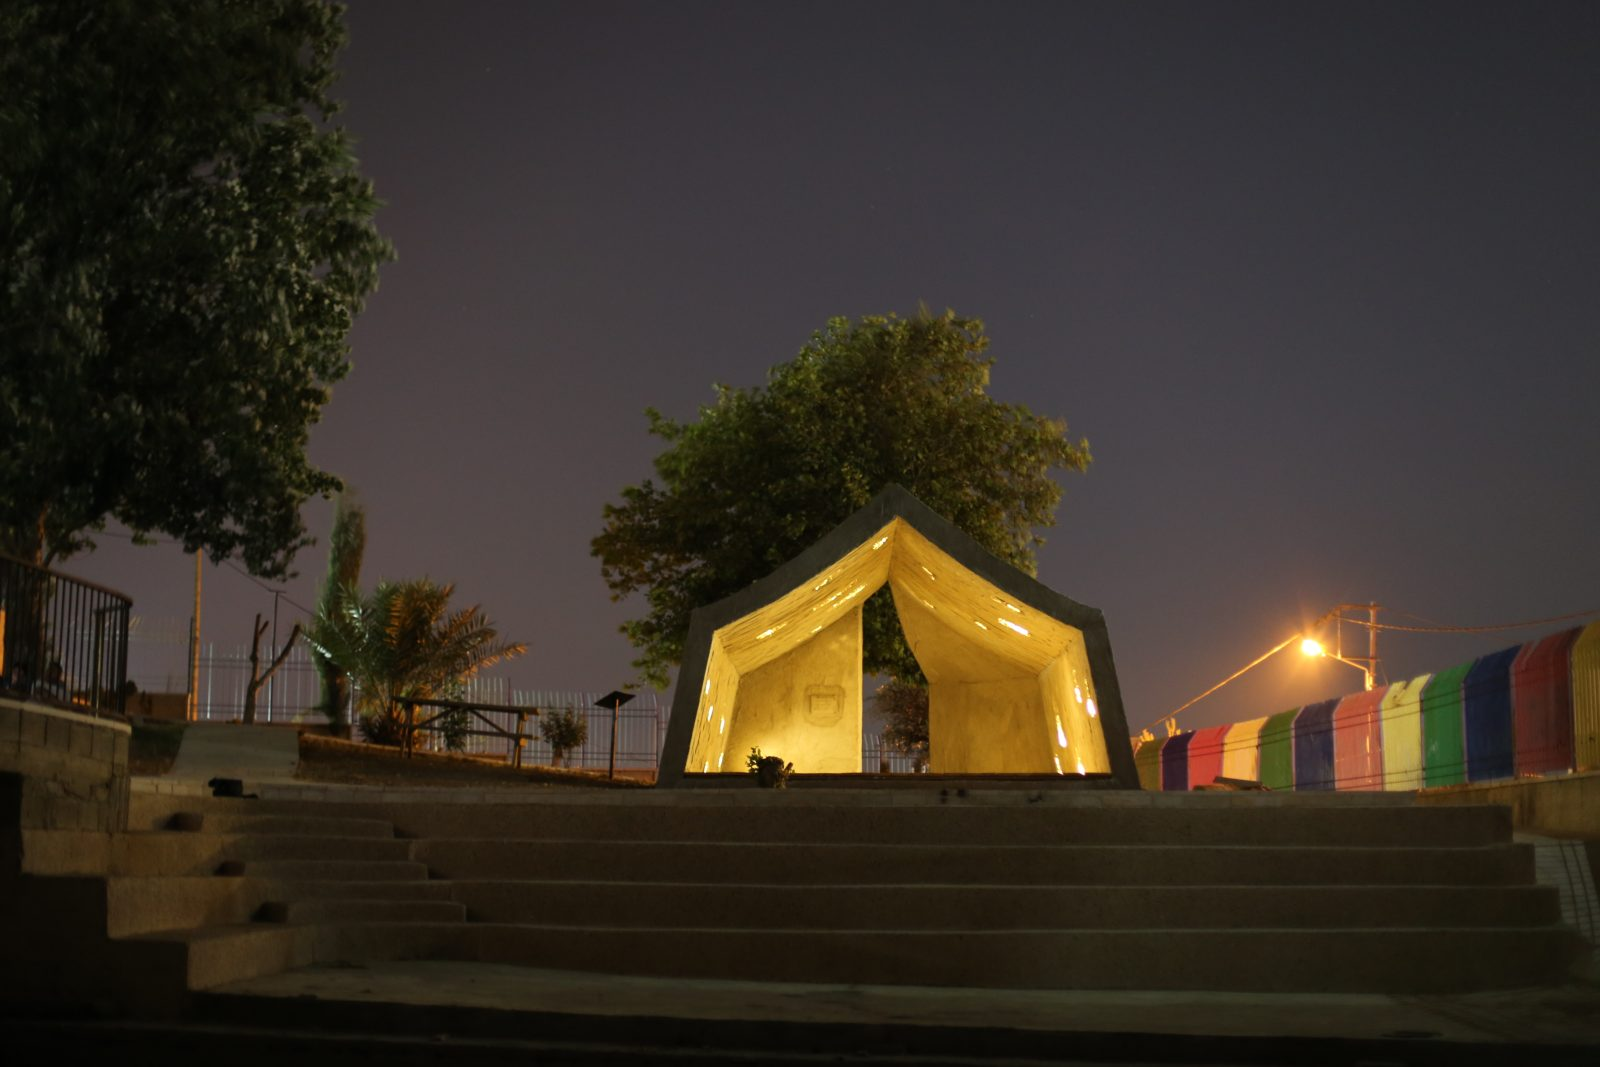 Photo by Sara Anna. The Concrete Tent ... & Concrete Tent u2013 DAAR